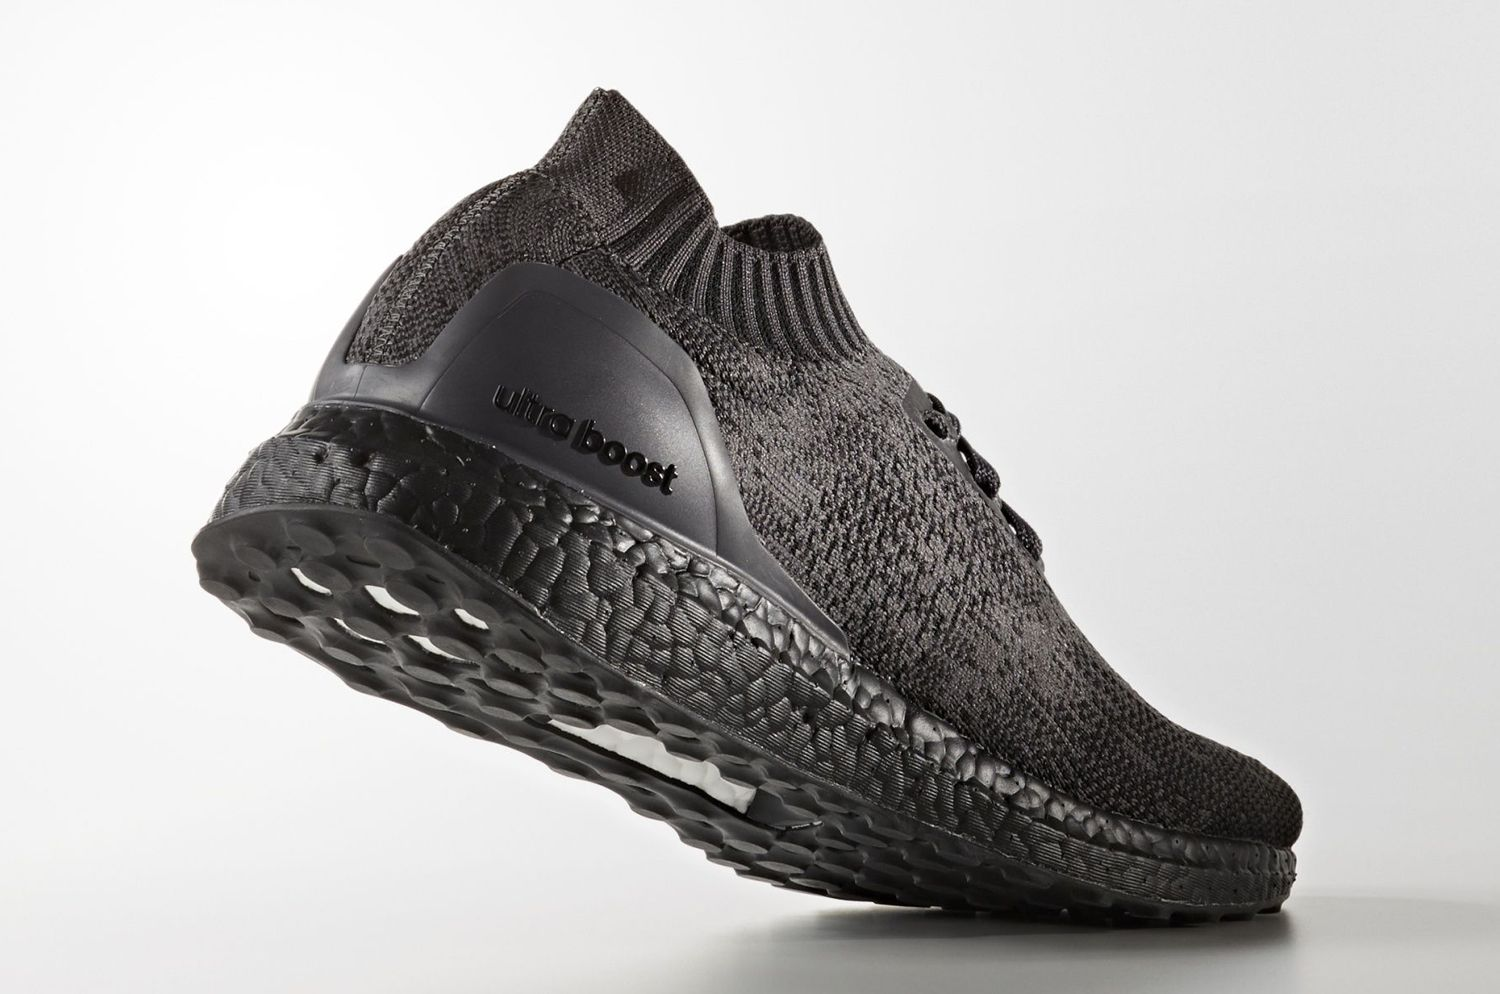 fcb248c0976a5 Triple Black Adidas Ultra Boost Uncaged